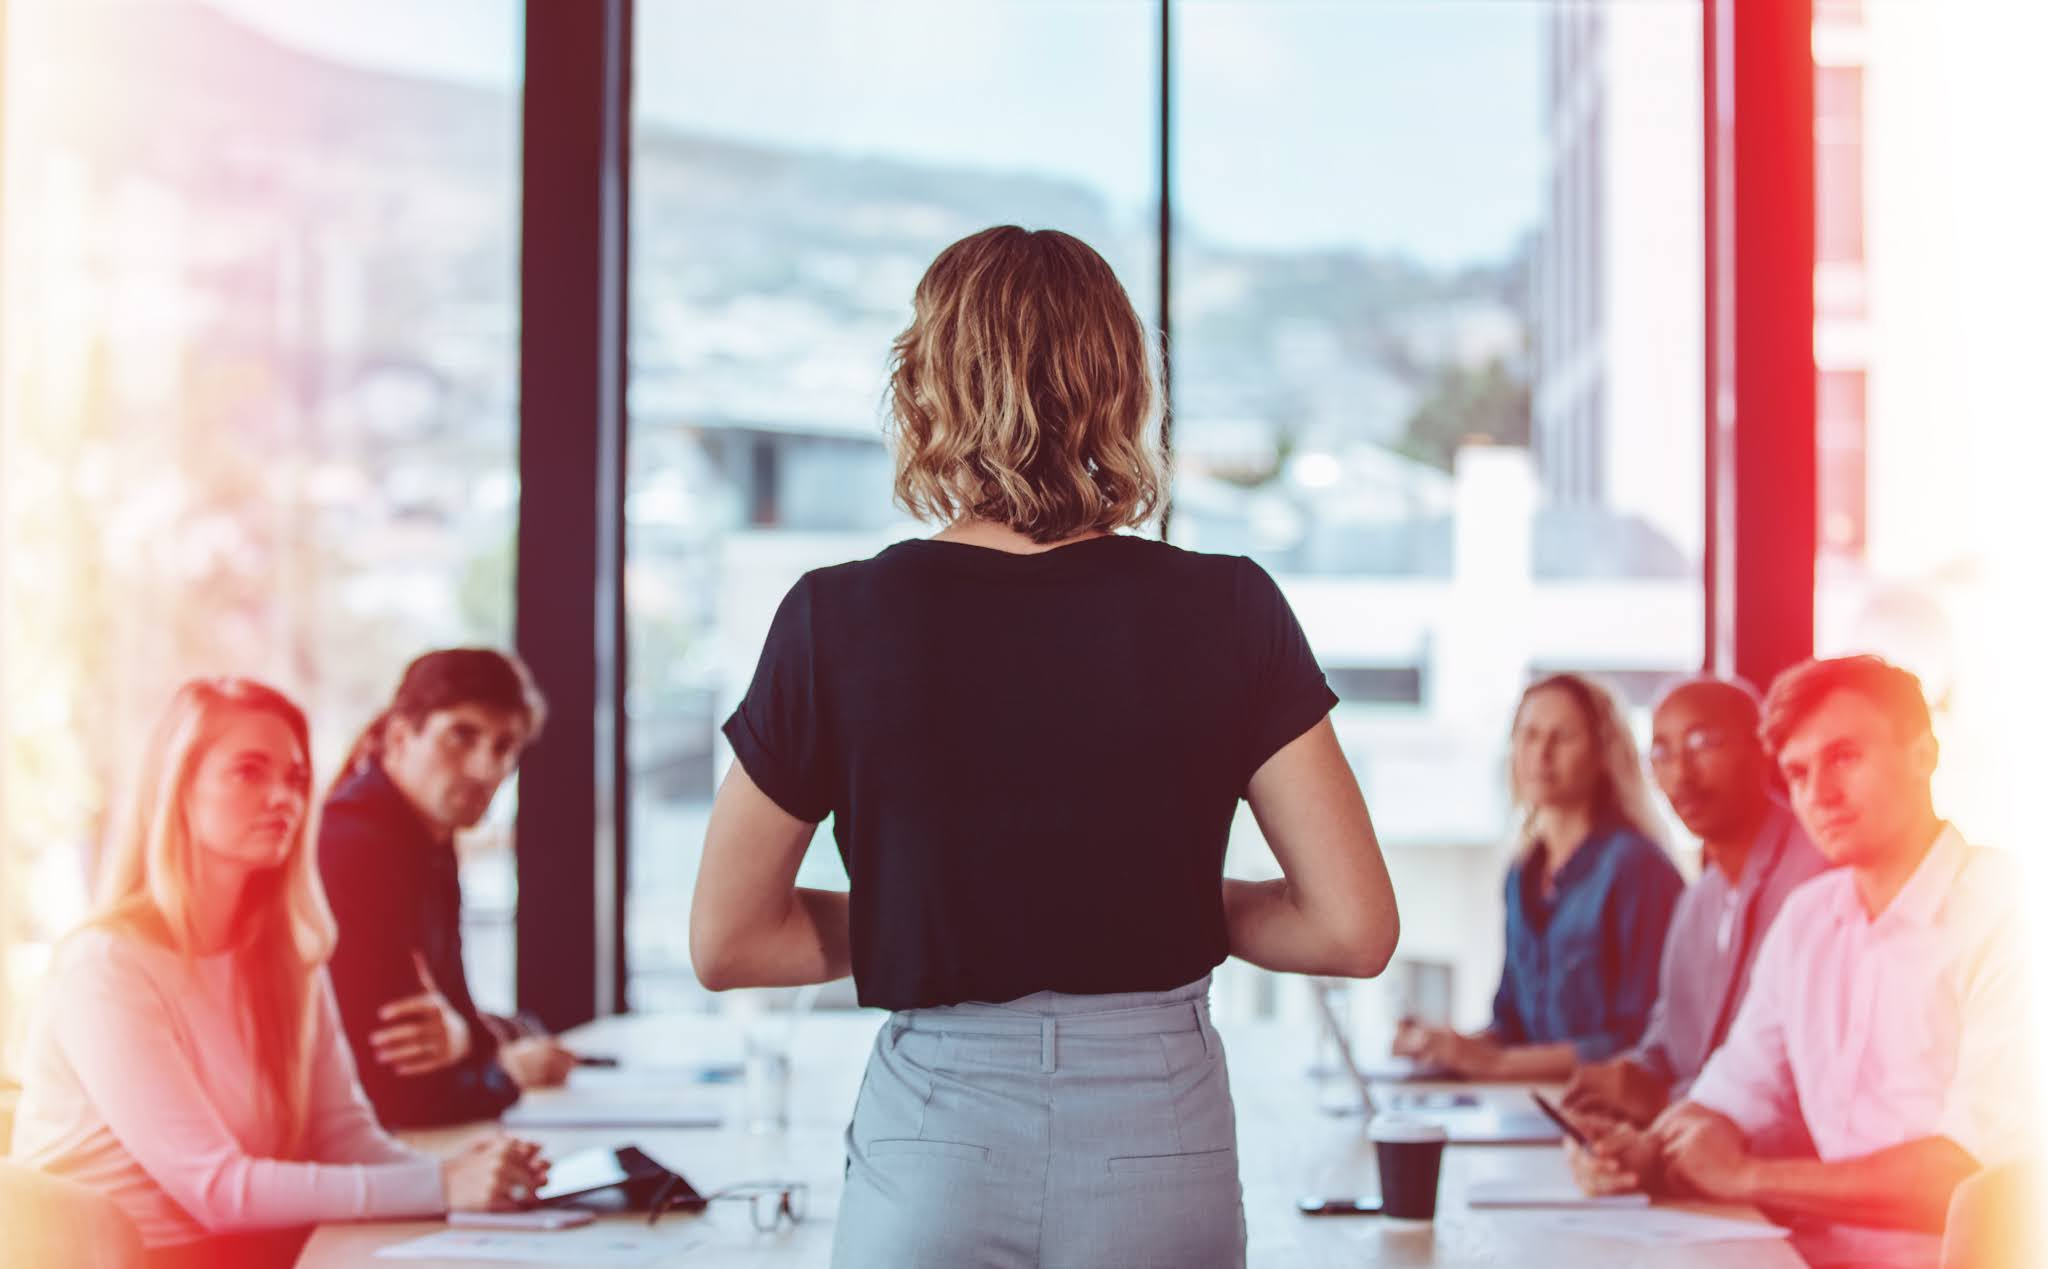 40% of corporate board seats must go to women